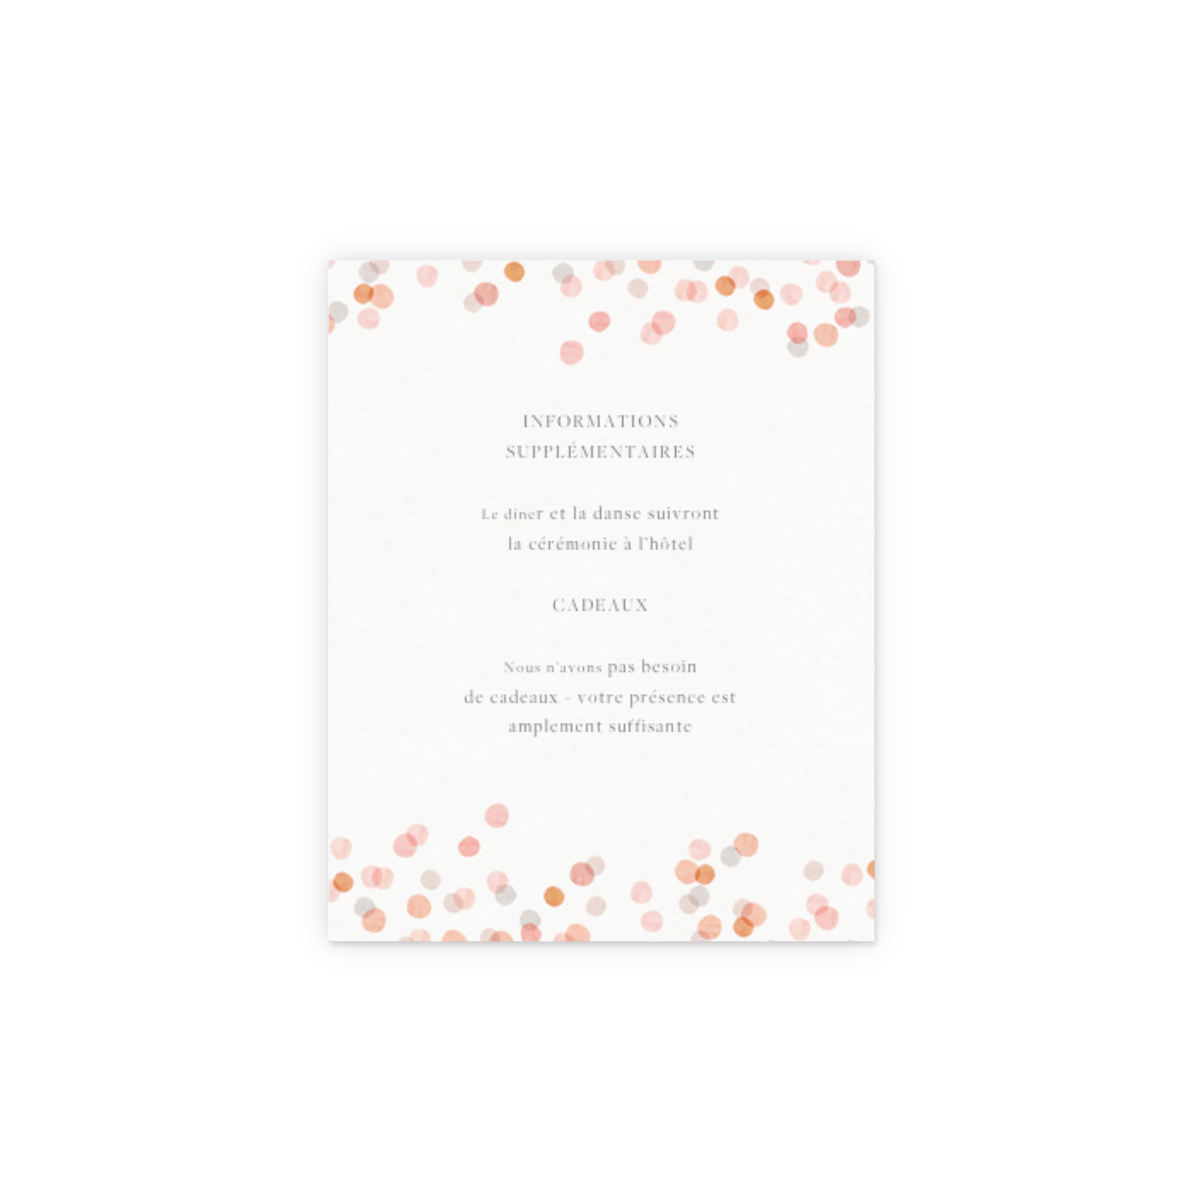 Https%3a%2f%2fwww.papier.com%2fproduct image%2f43795%2f9%2fblush confetti 1197 carte d informations 1561562433.png?ixlib=rb 1.1